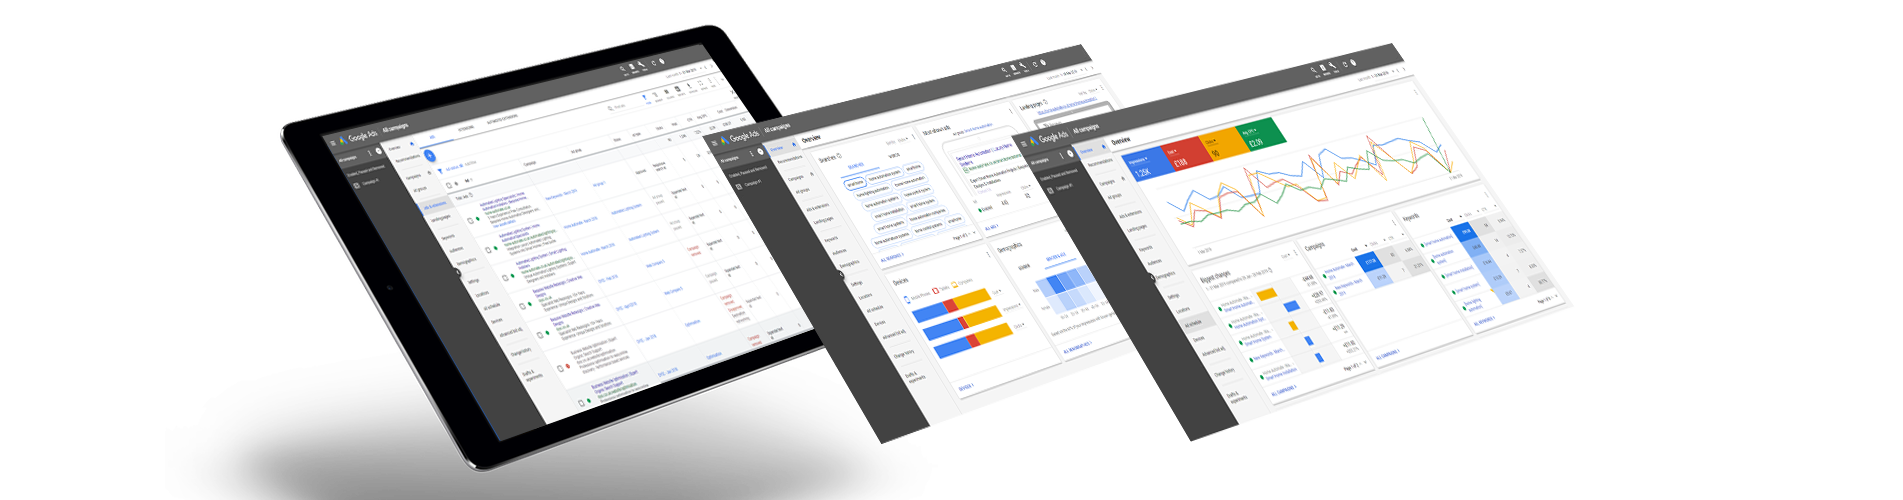 google-adwords-dashboards-stack